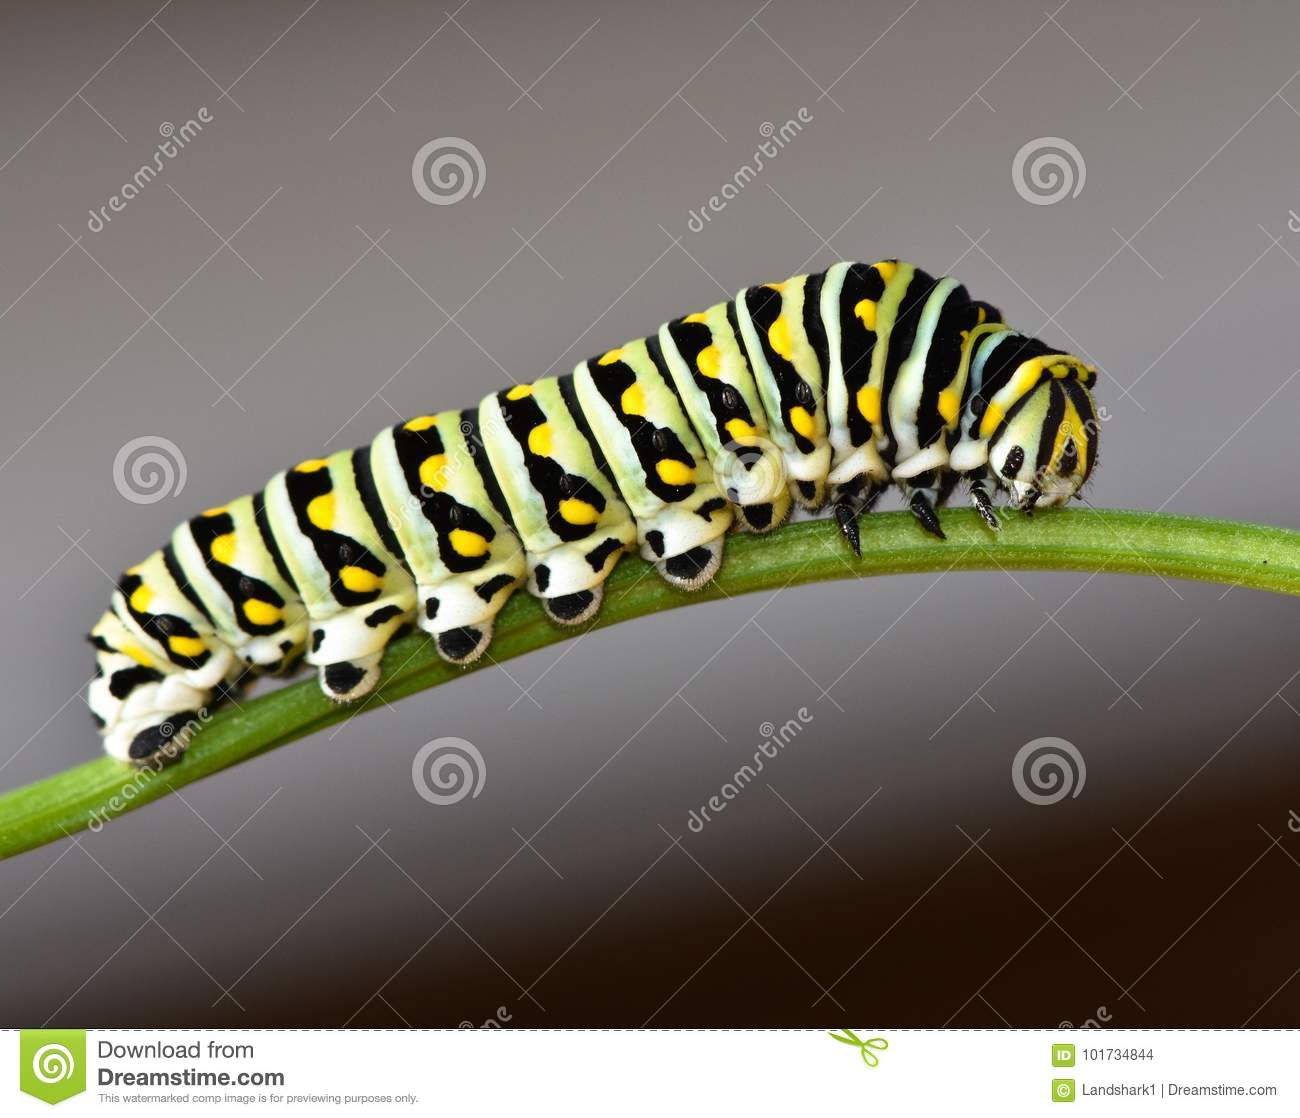 Schwarzes Swallowtail Caterpillar - Schmetterlingslarve